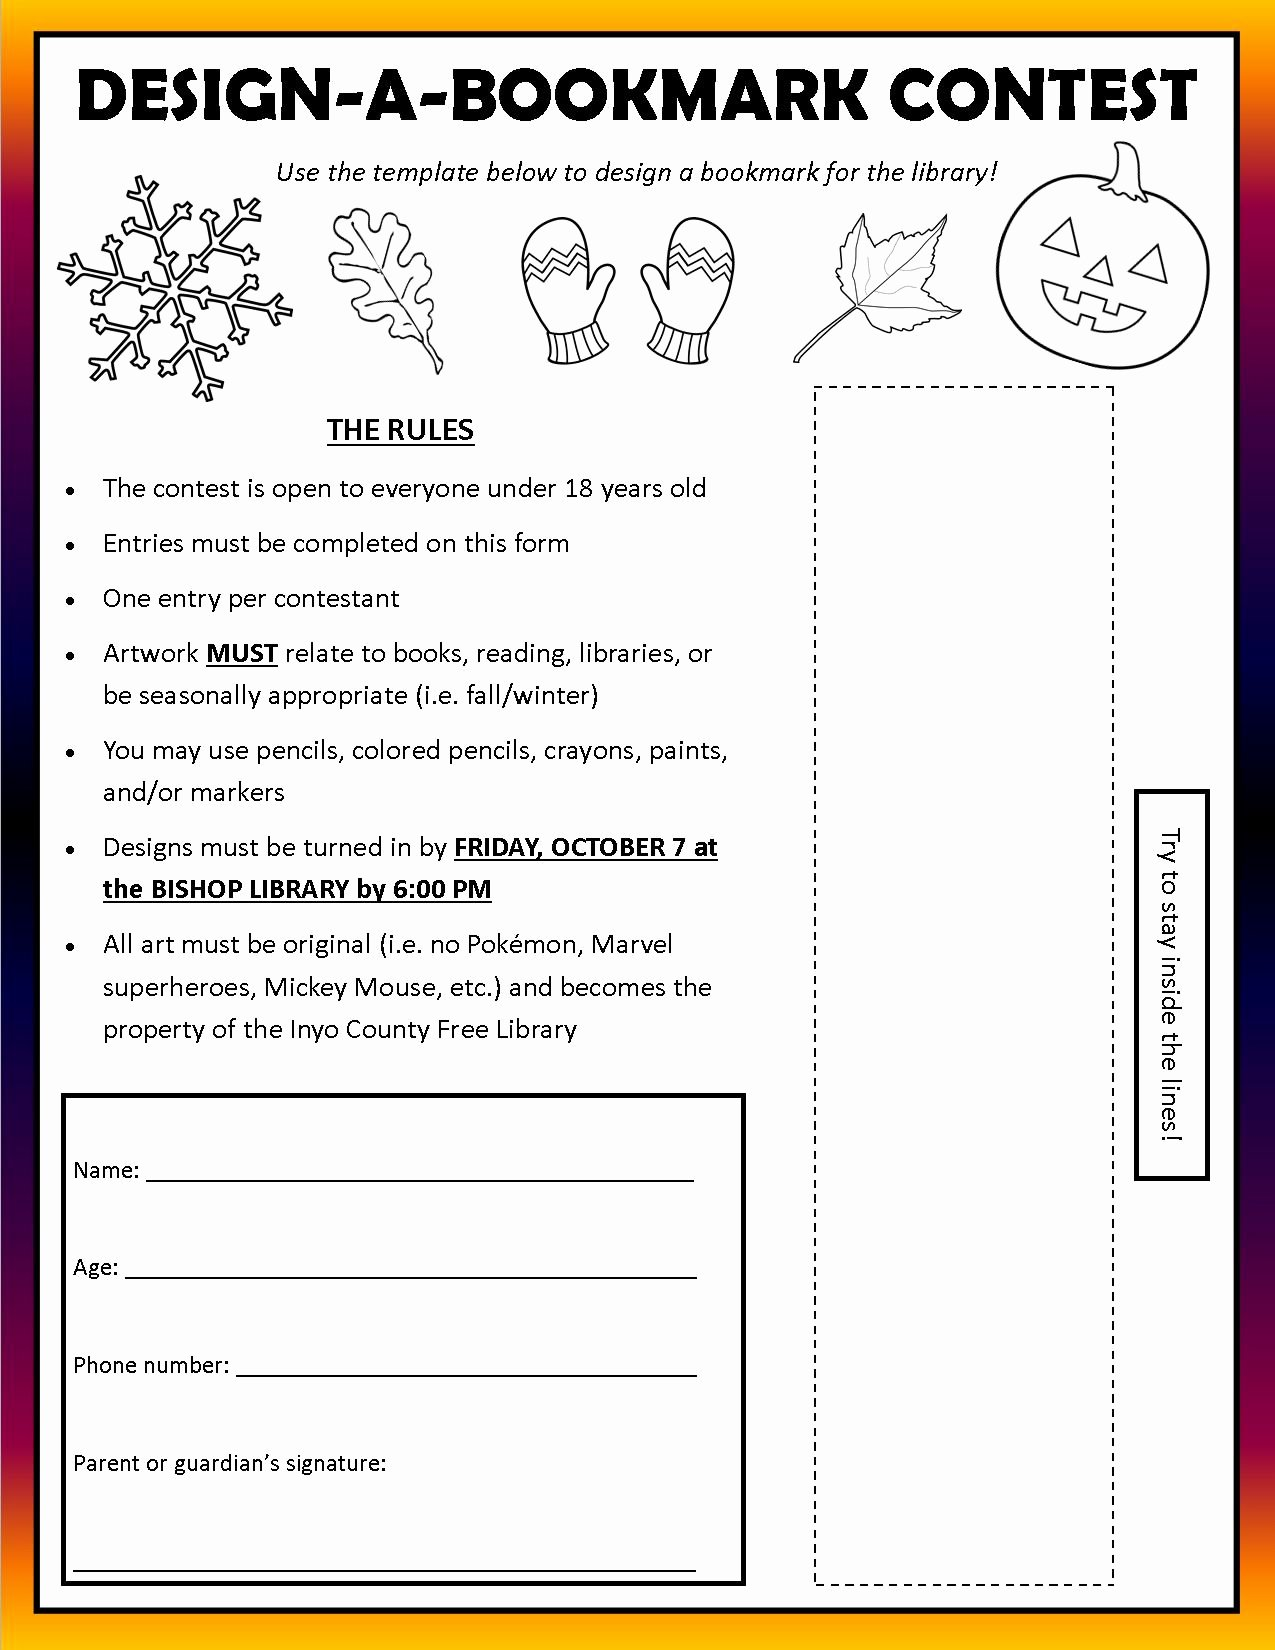 Contest Entry form Template Luxury Design A Bookmark Contest at Bishop Library Sierra Wave